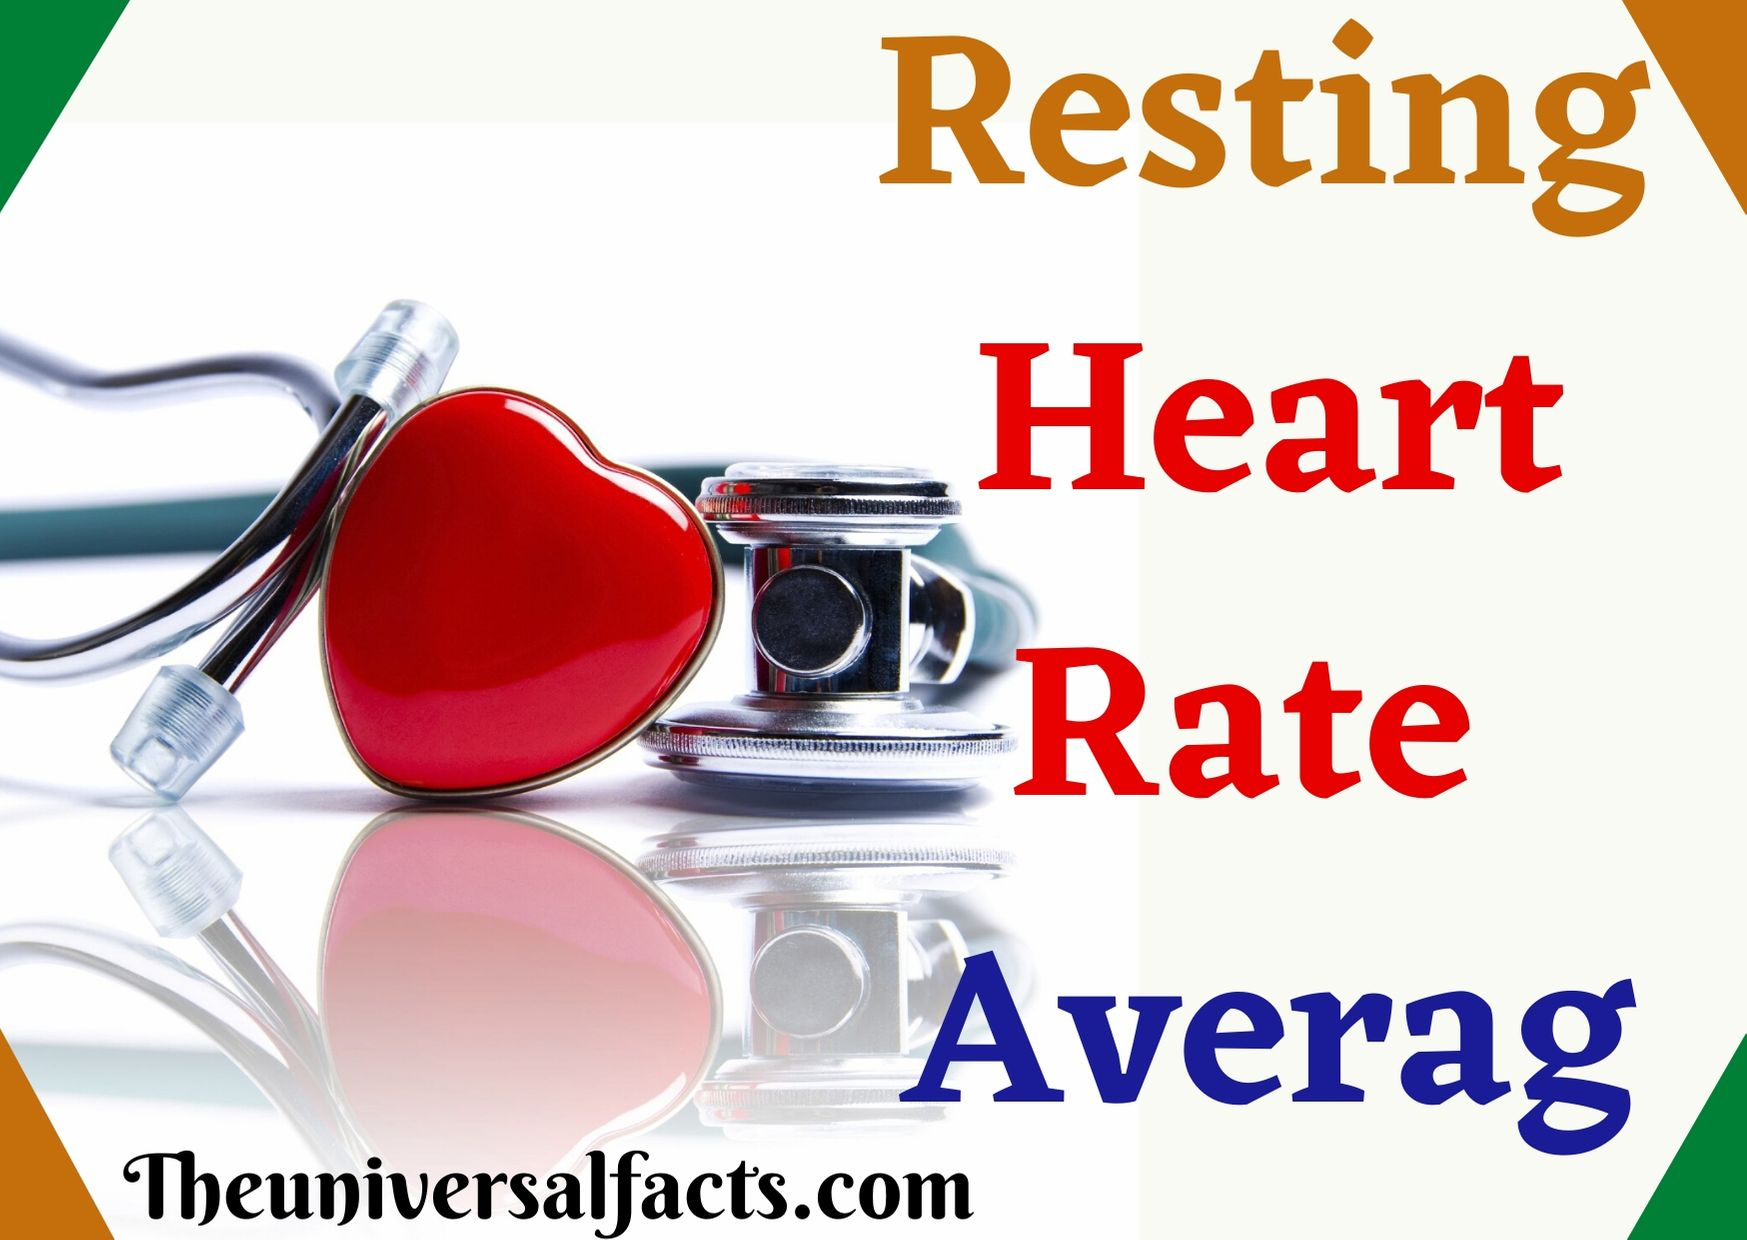 Resting Heart Rate Average